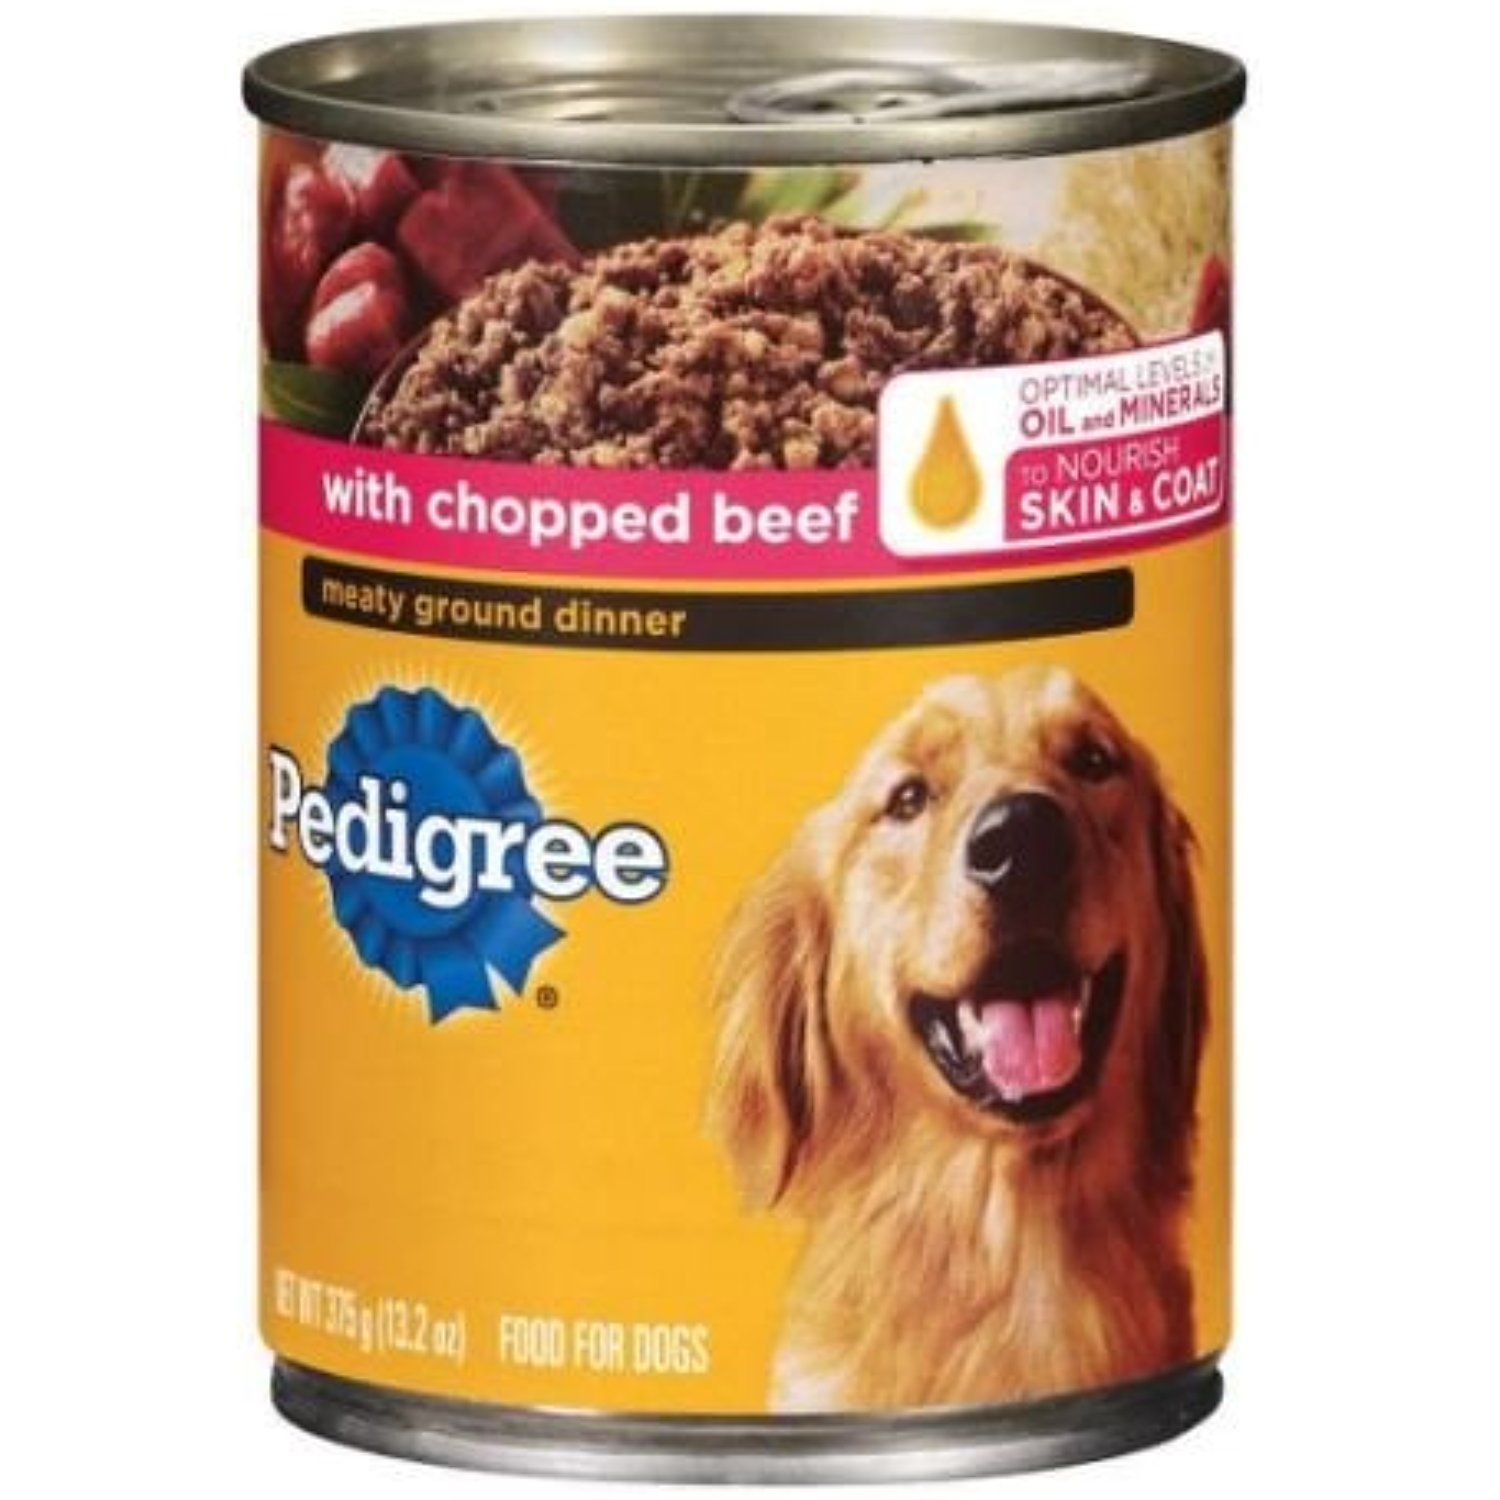 Pedigree Meaty Ground Dinner With Chopped Beef Wet Dog Food 13 2